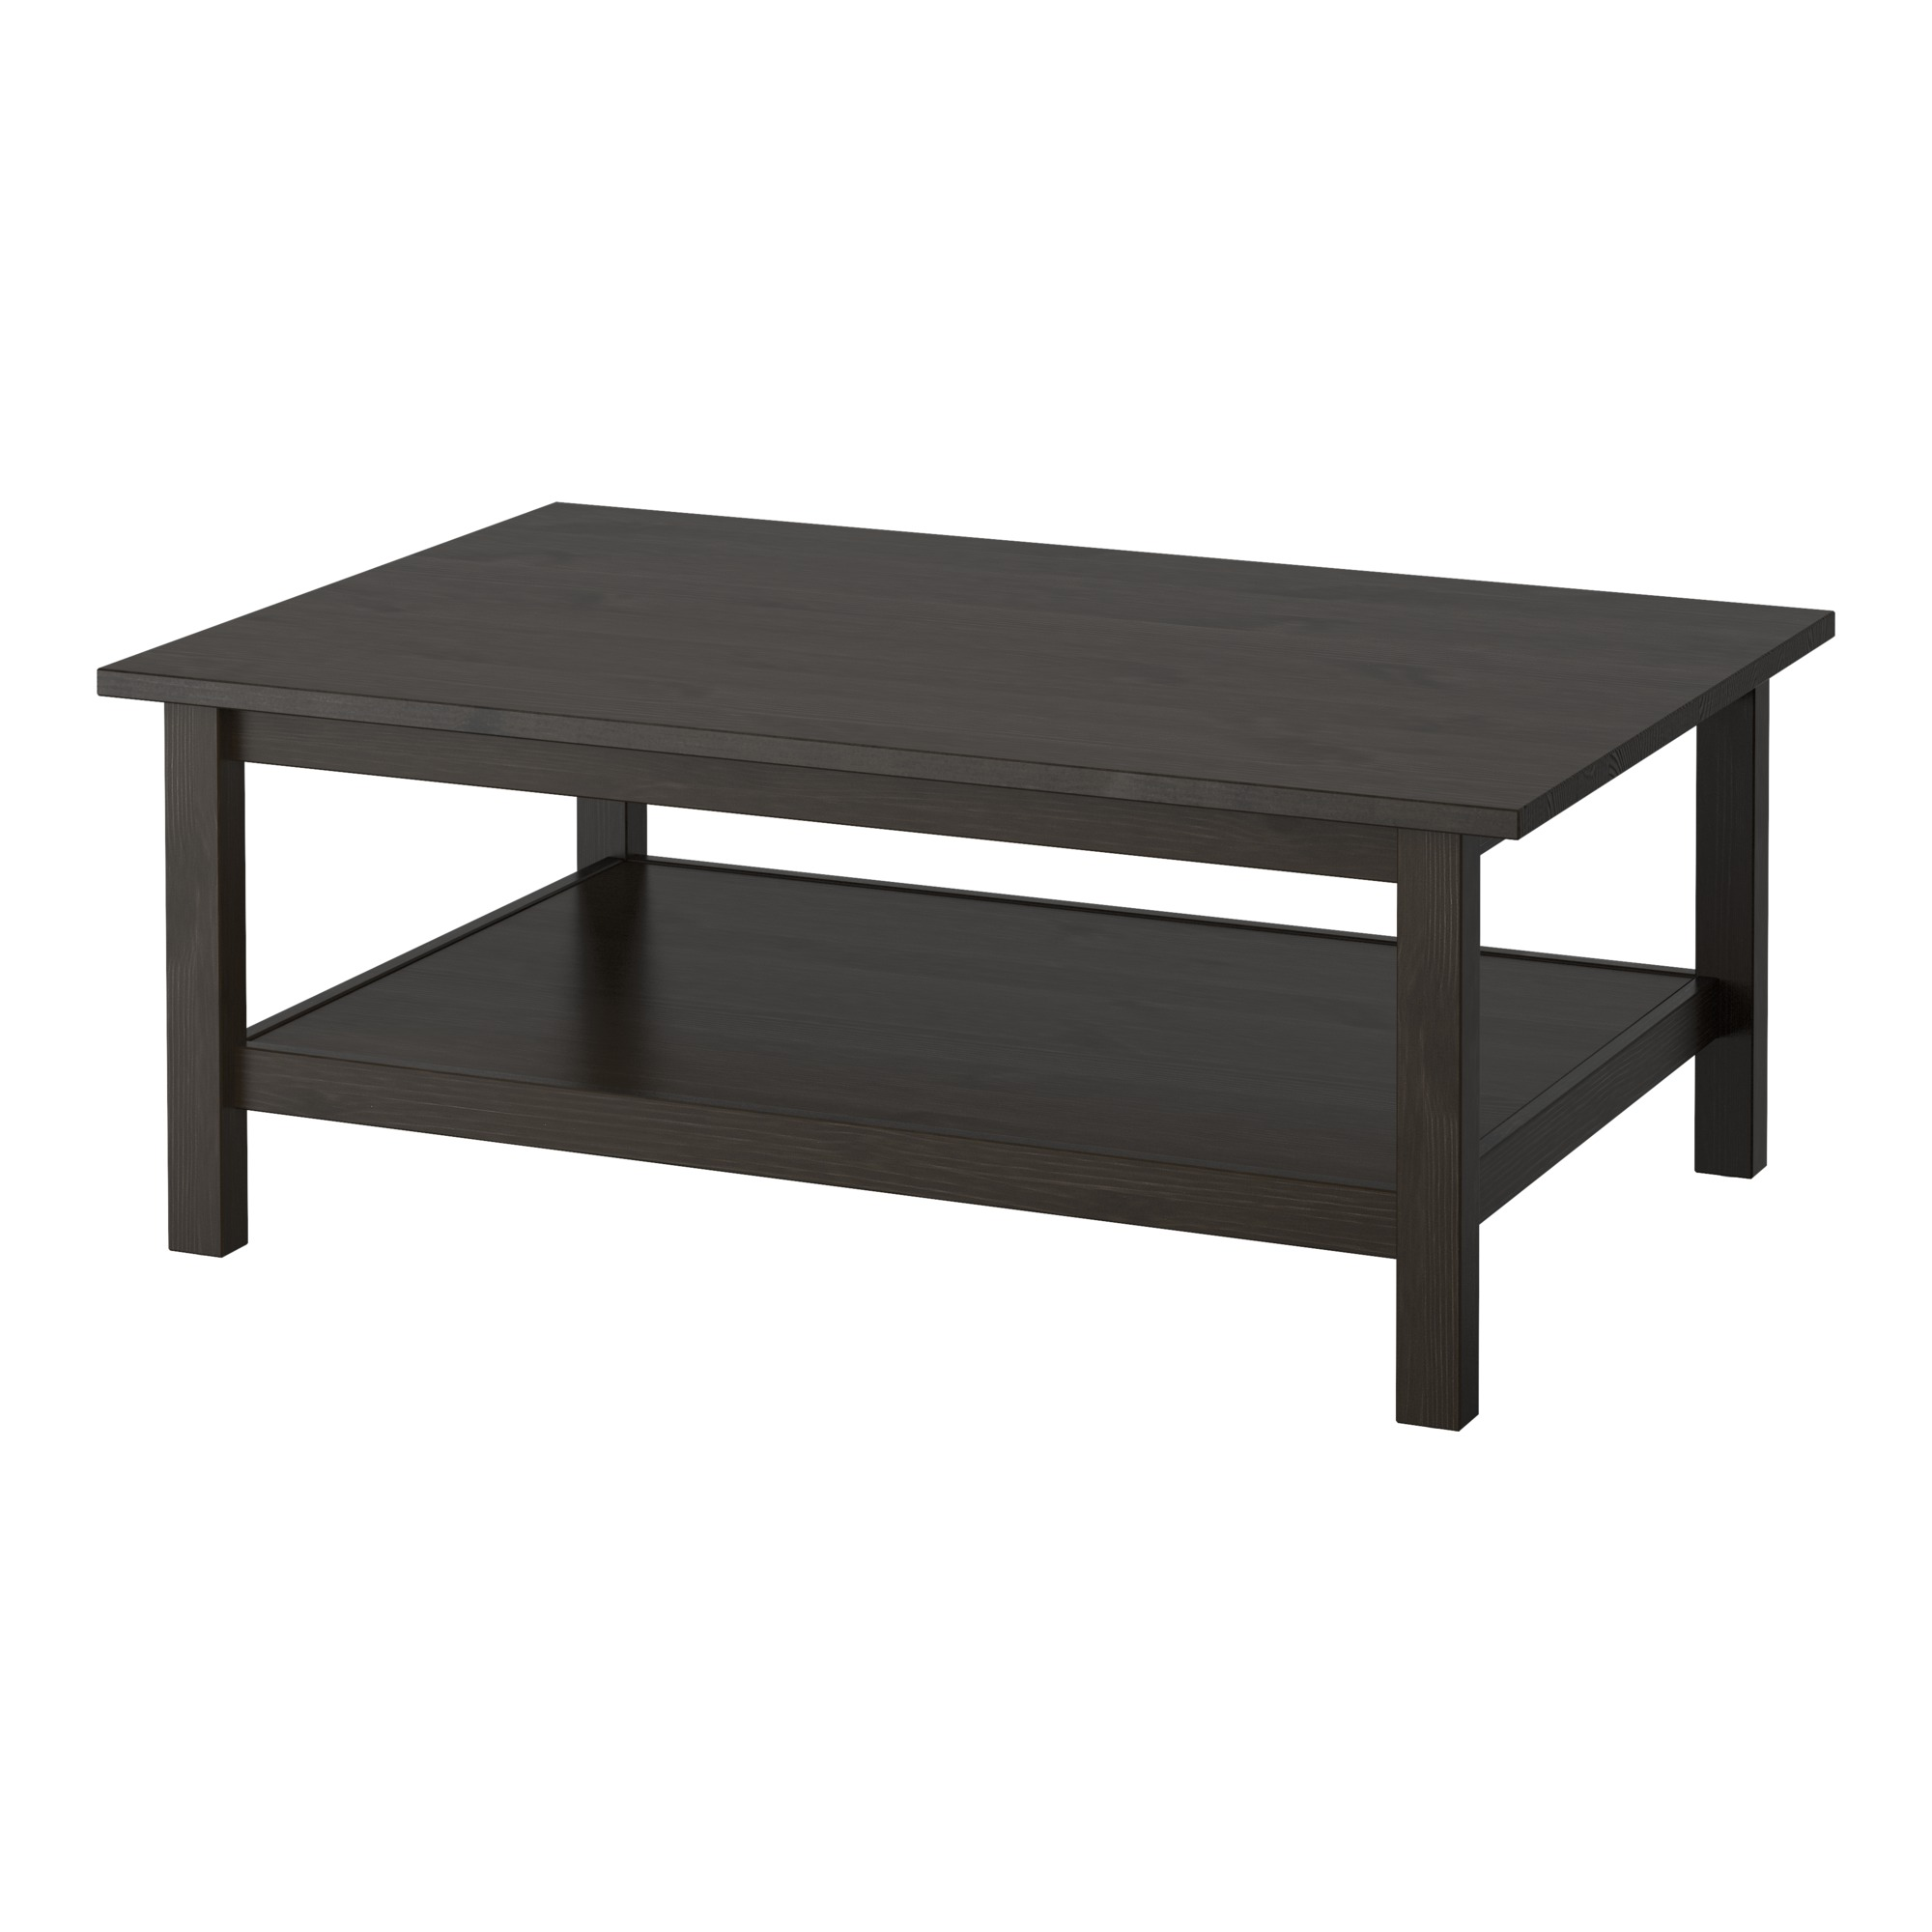 hemnes coffee table - dark gray stained - ikea FMNLJQI